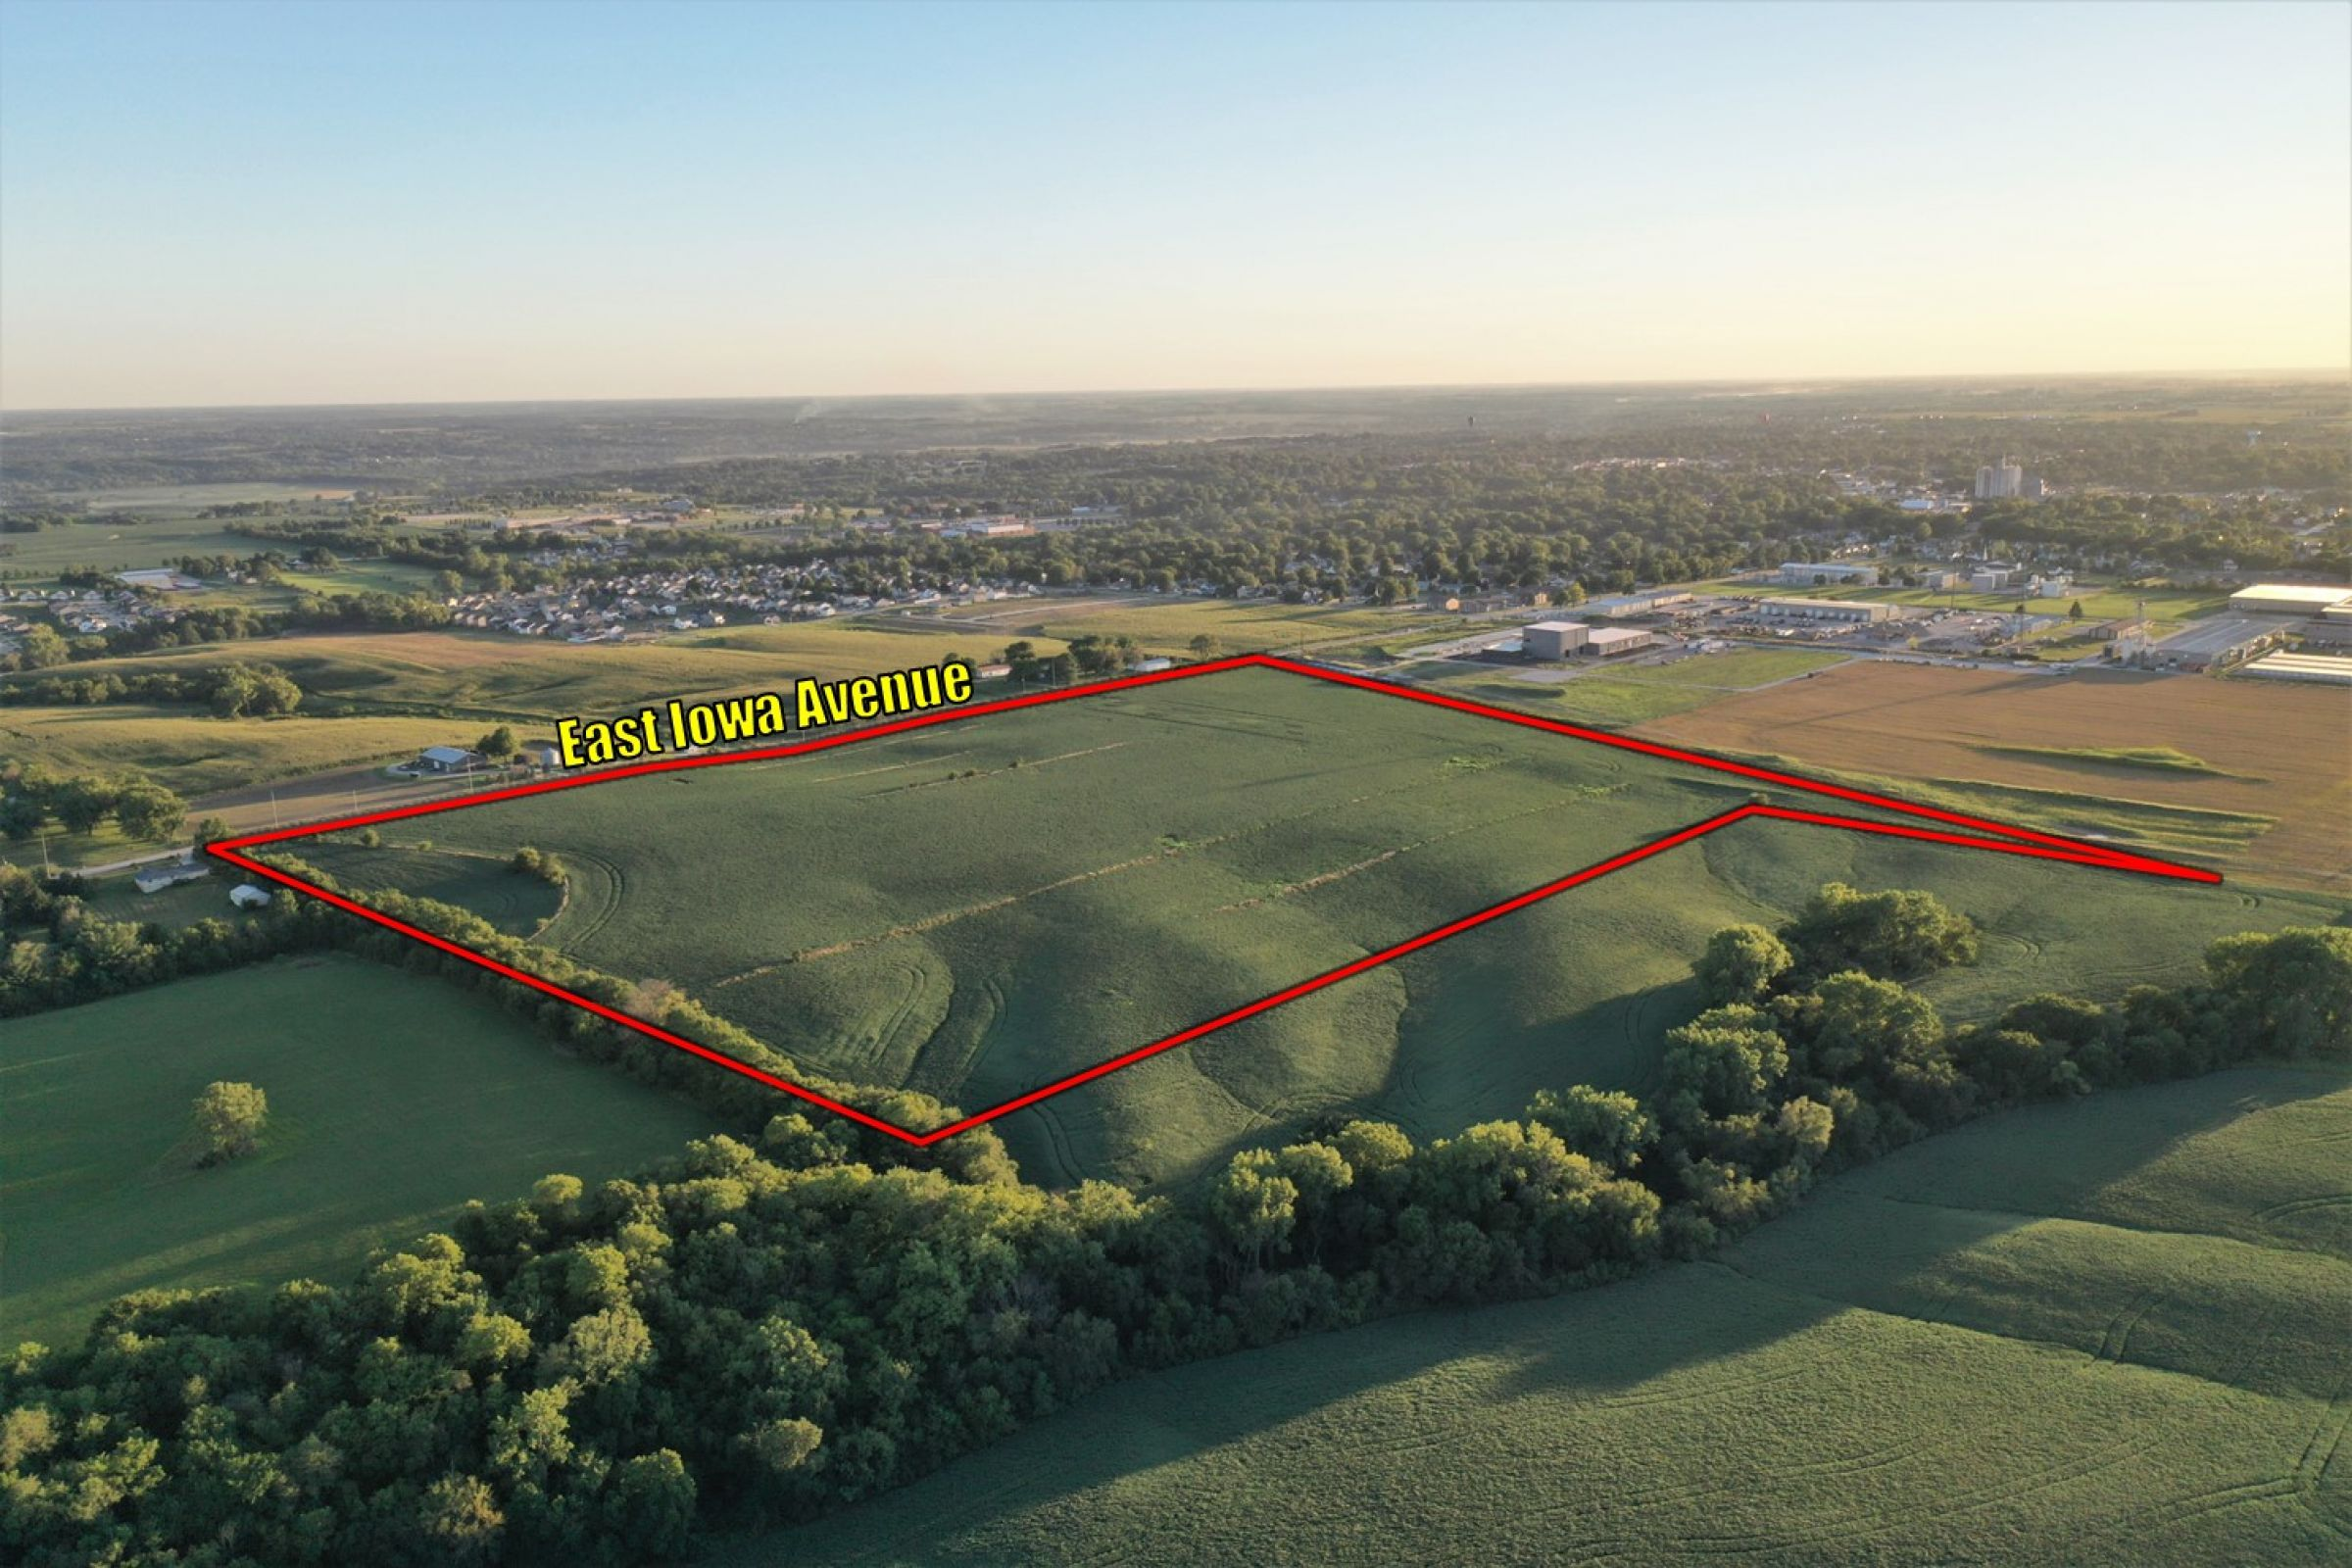 development-land-commercial-warren-county-iowa-50-acres-listing-number-15150-1-2020-08-31-121601.jpg